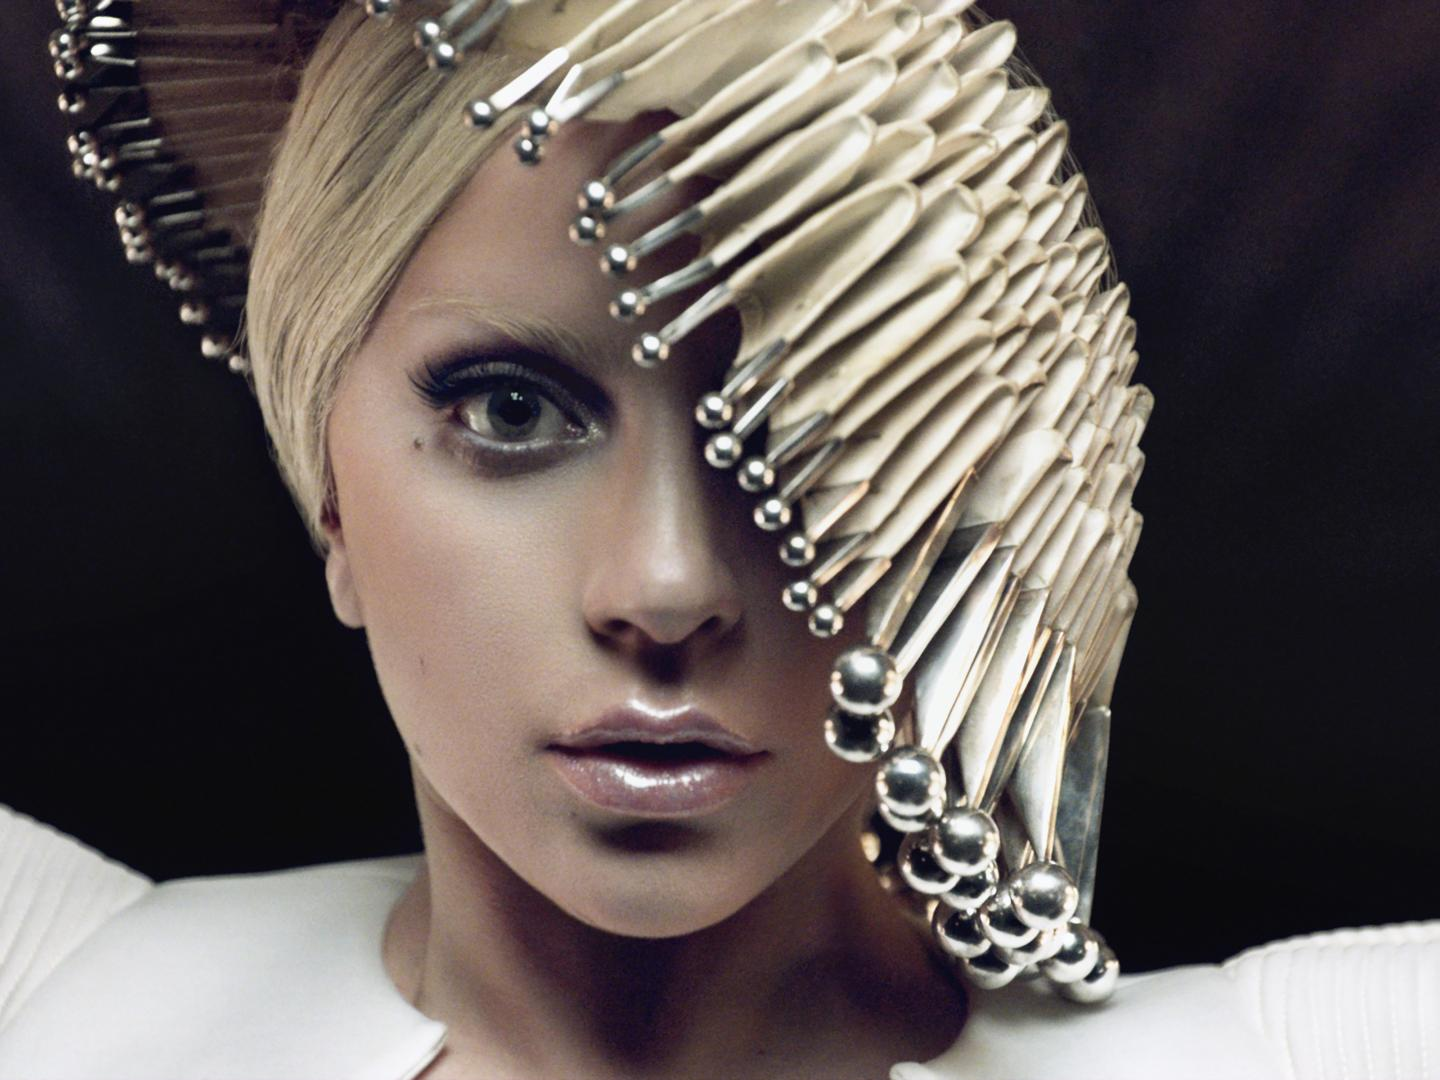 The Lady Gaga + Intel Performance Thumbnail